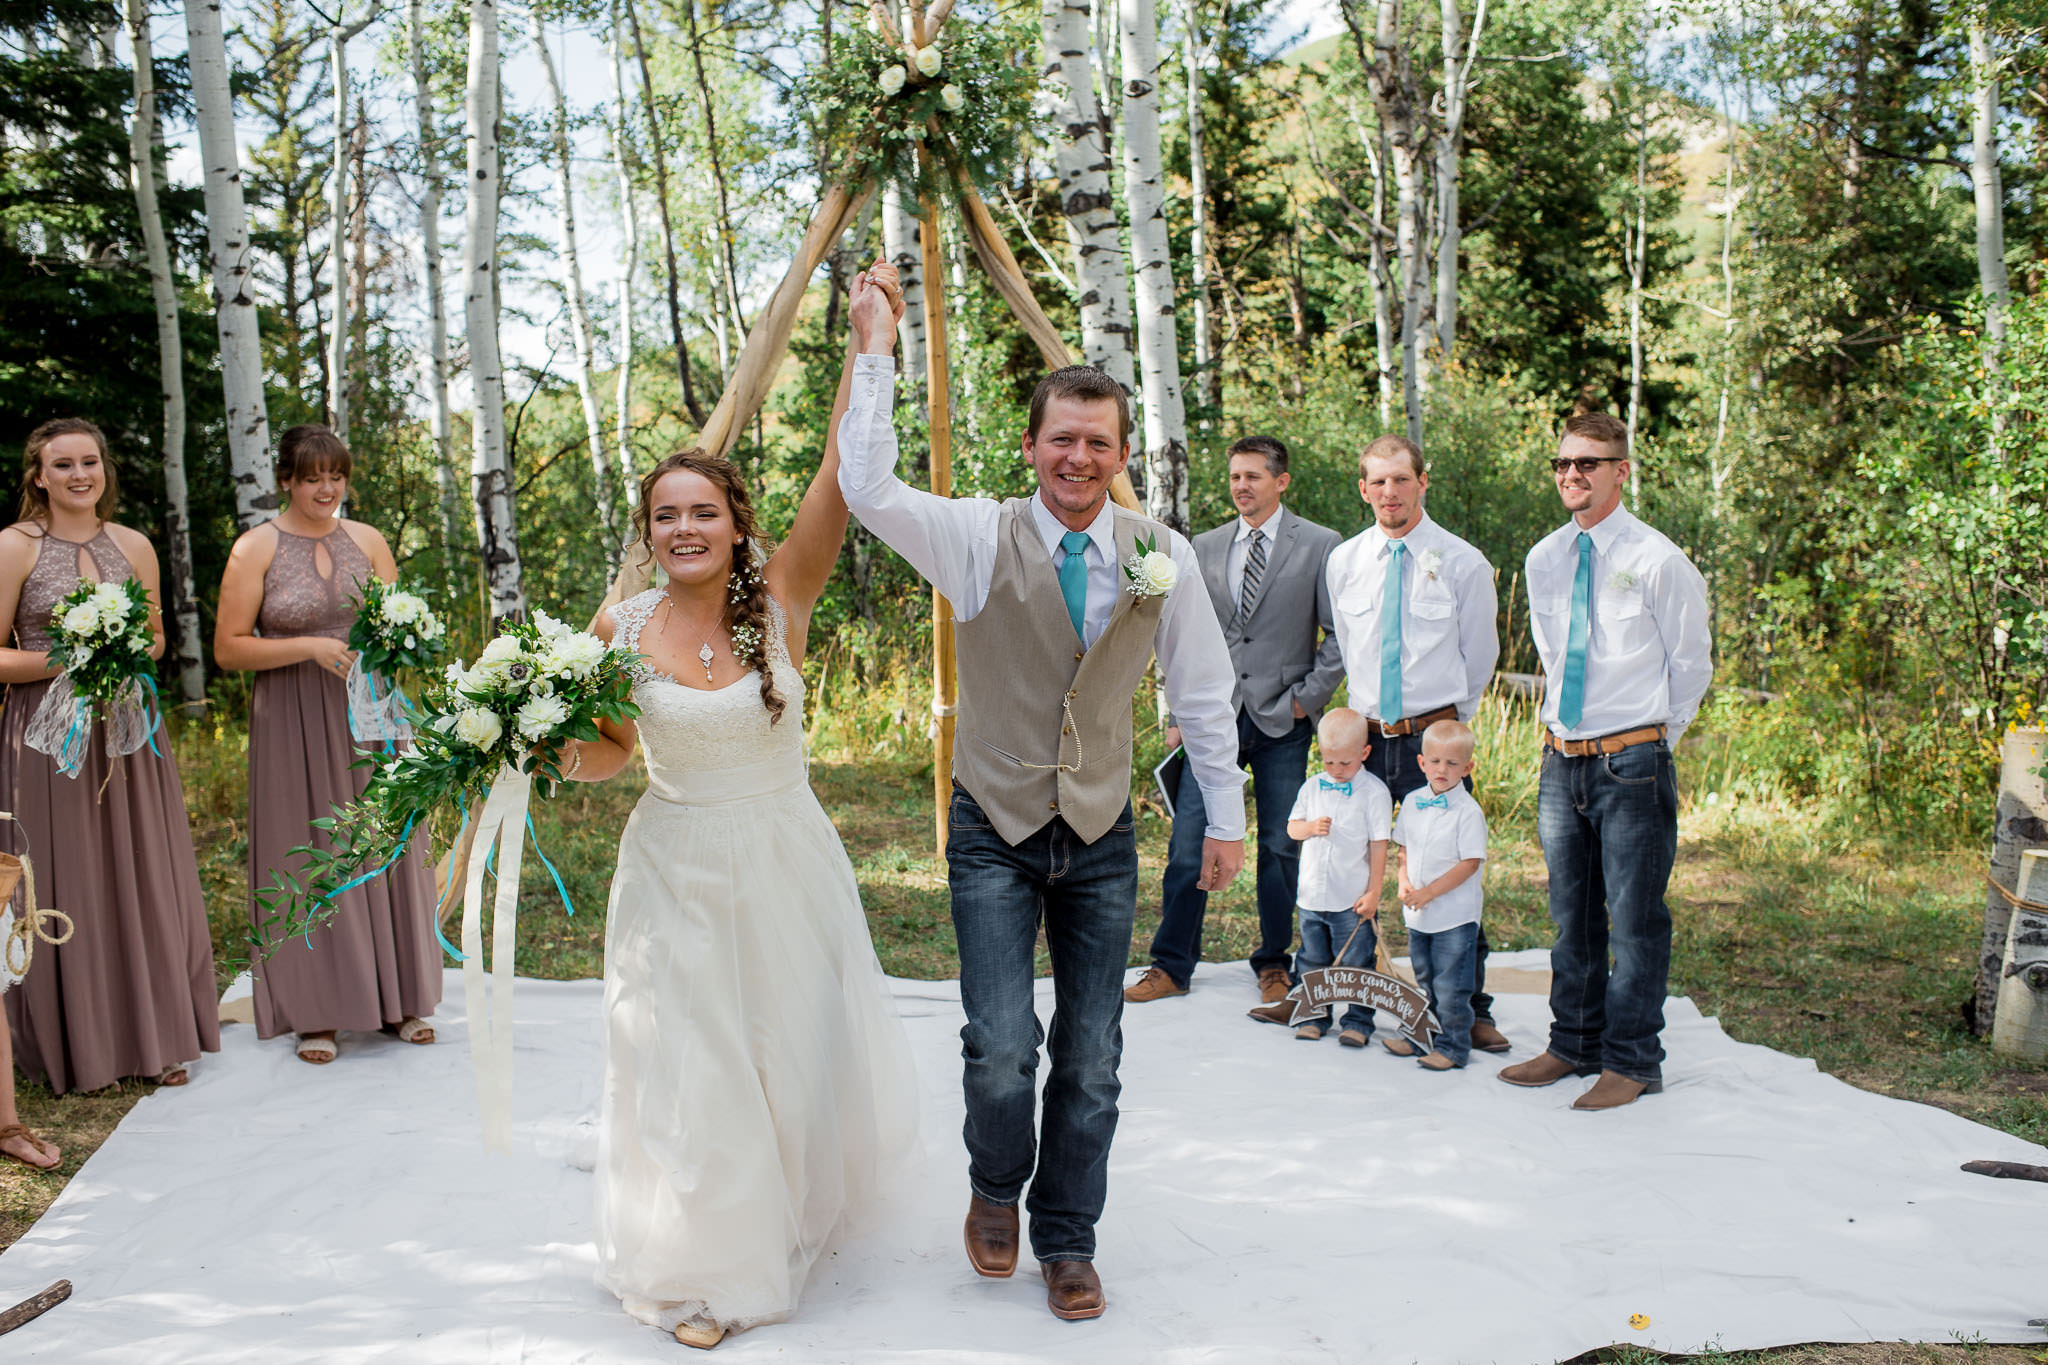 Bride and Groom celebrate after wedding ceremony in the Grand Mesa